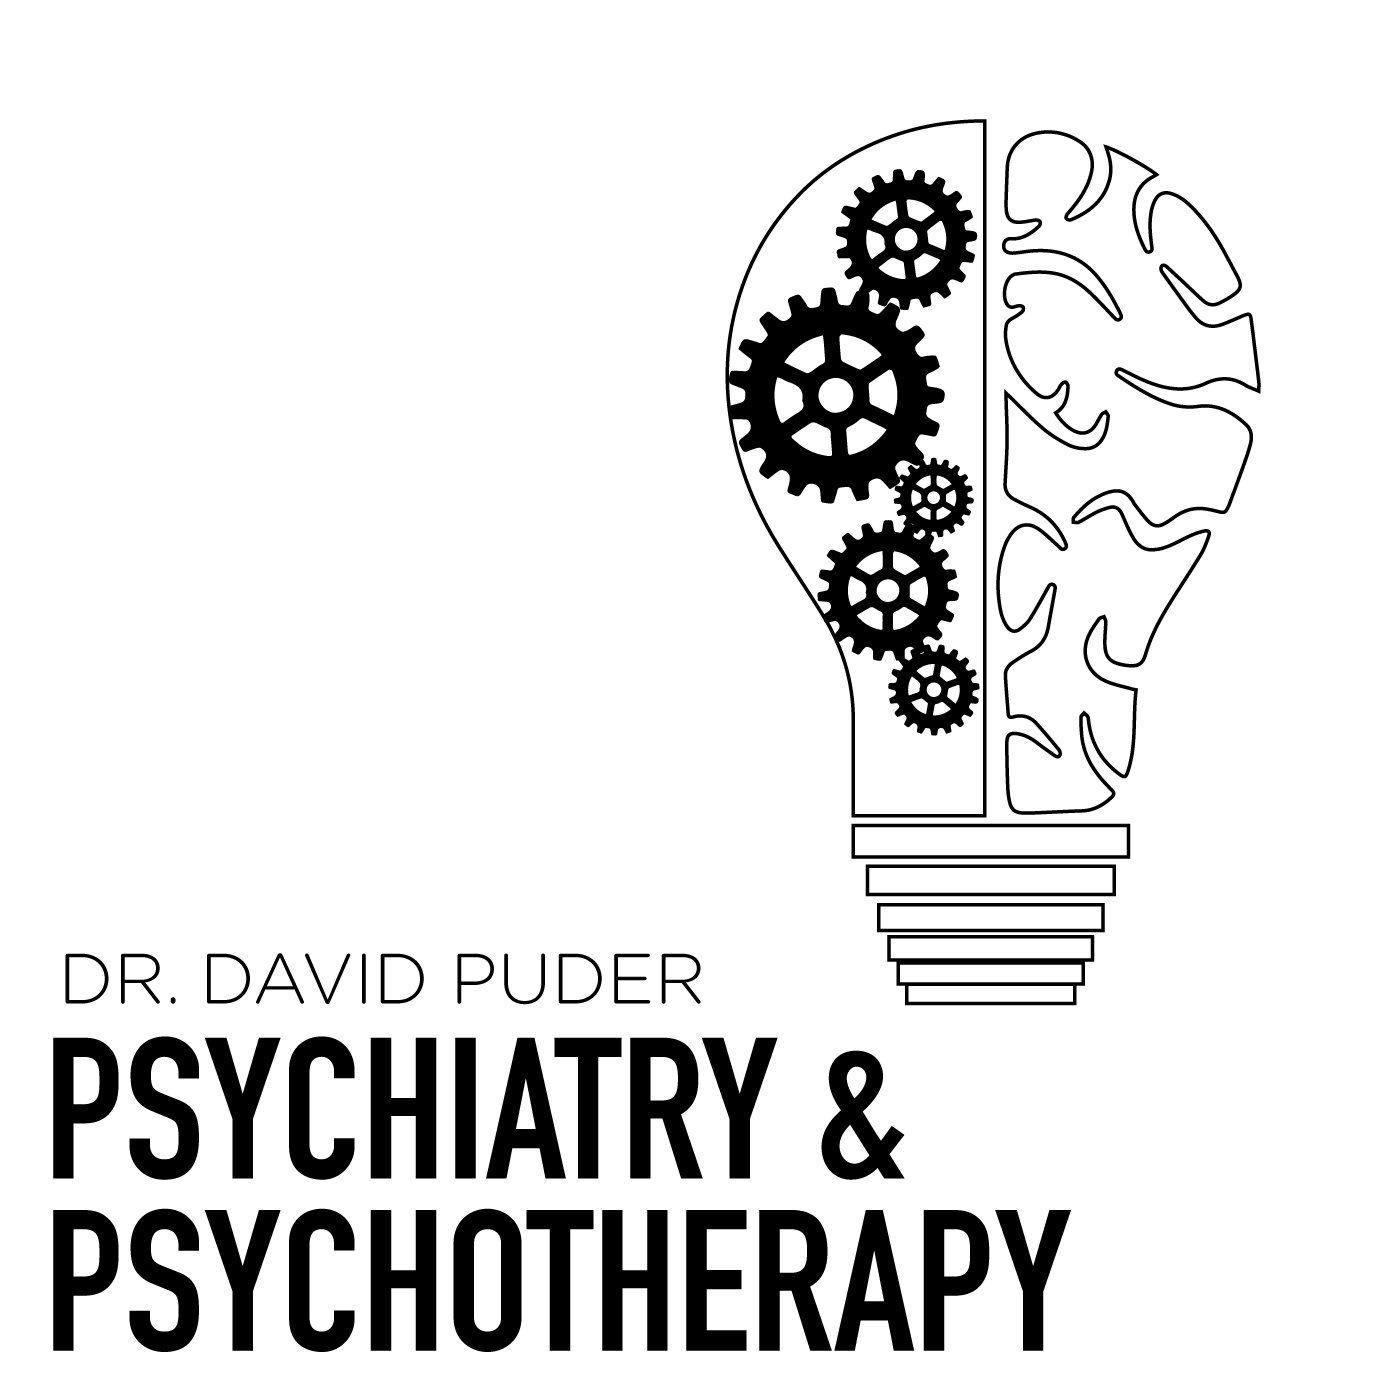 Psychiatry & Psychotherapy Podcast - Psilocybin Therapy - Part 2: Clinical Trials, Secondary Effects, Brain Imaging, and the Future of Psilocybin Therapy